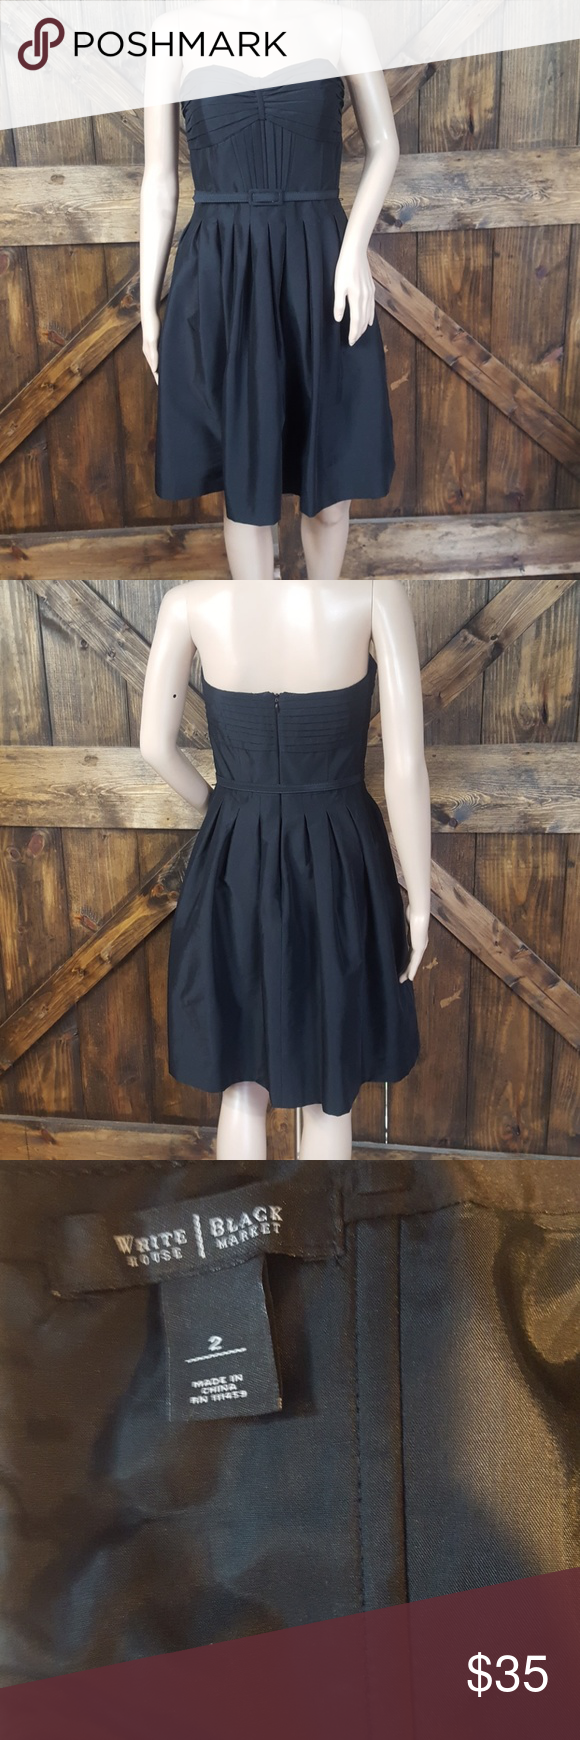 WHBM black sleeveless dress Cute little black dress, cocktail dress White House Black Market Dresses #blacksleevelessdress